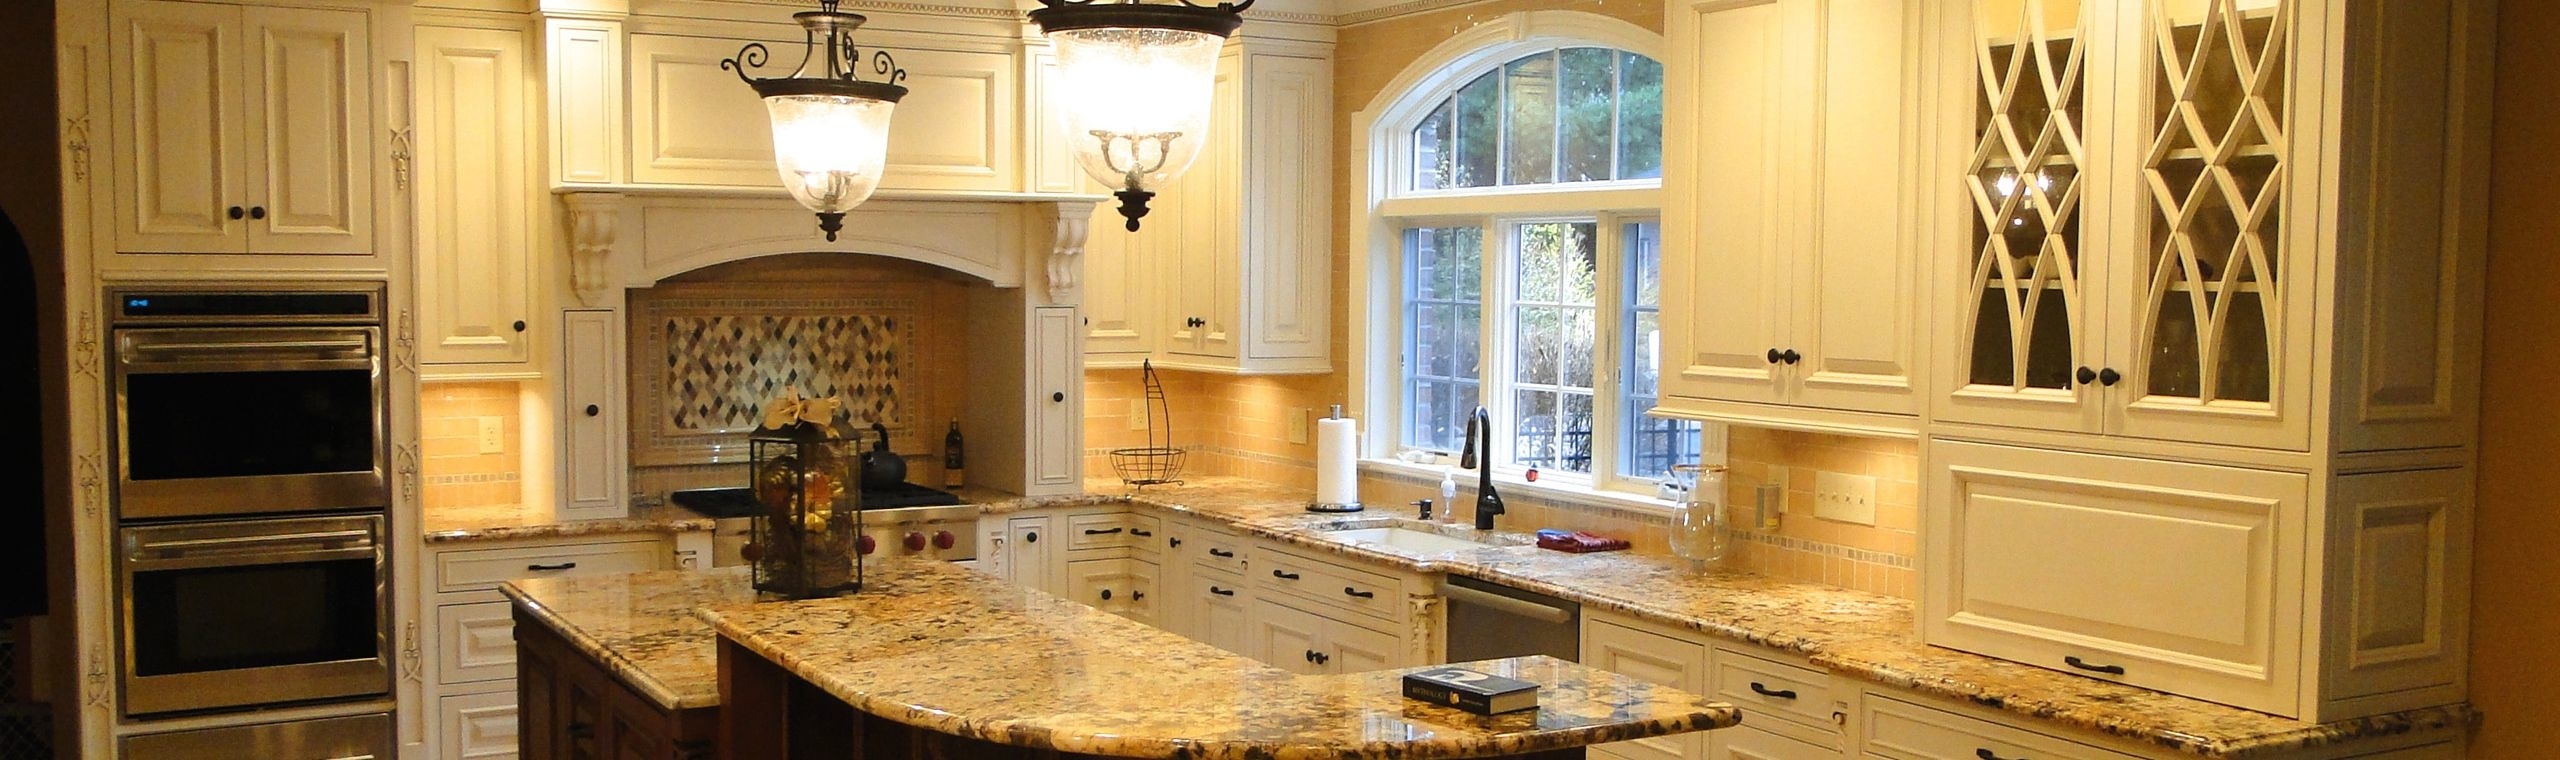 Cabinets_Countertops_3